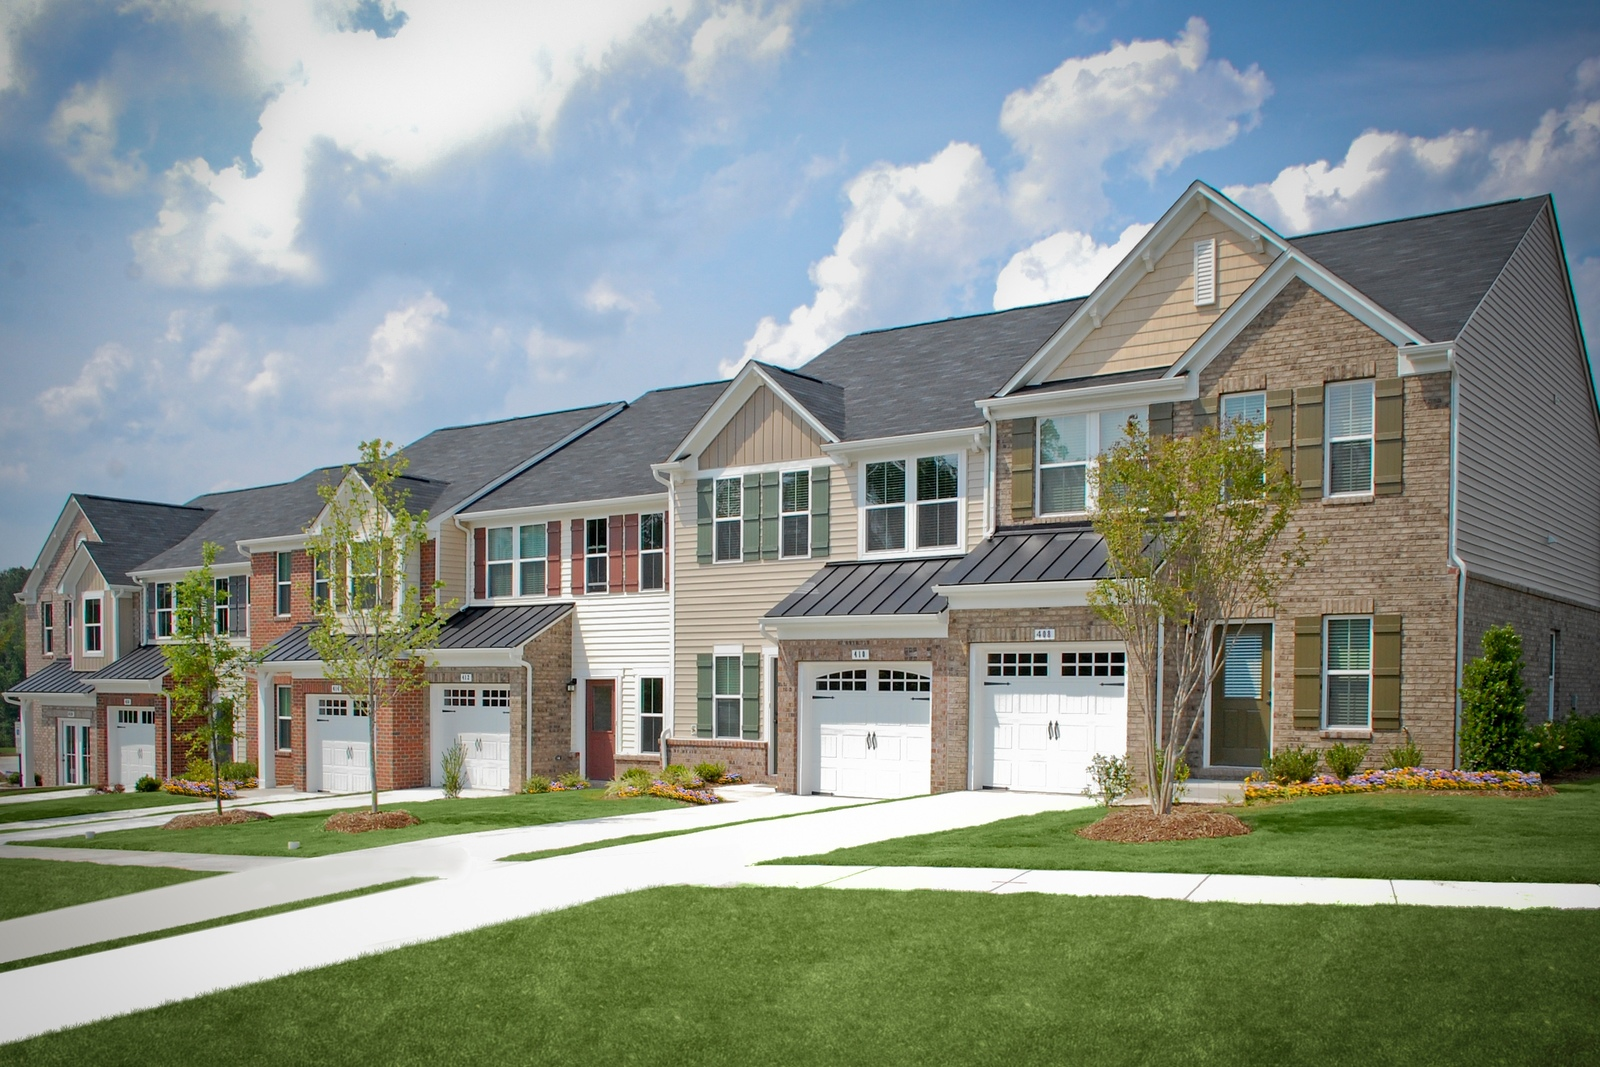 The Preserve at Deep Creek Carriage Homes